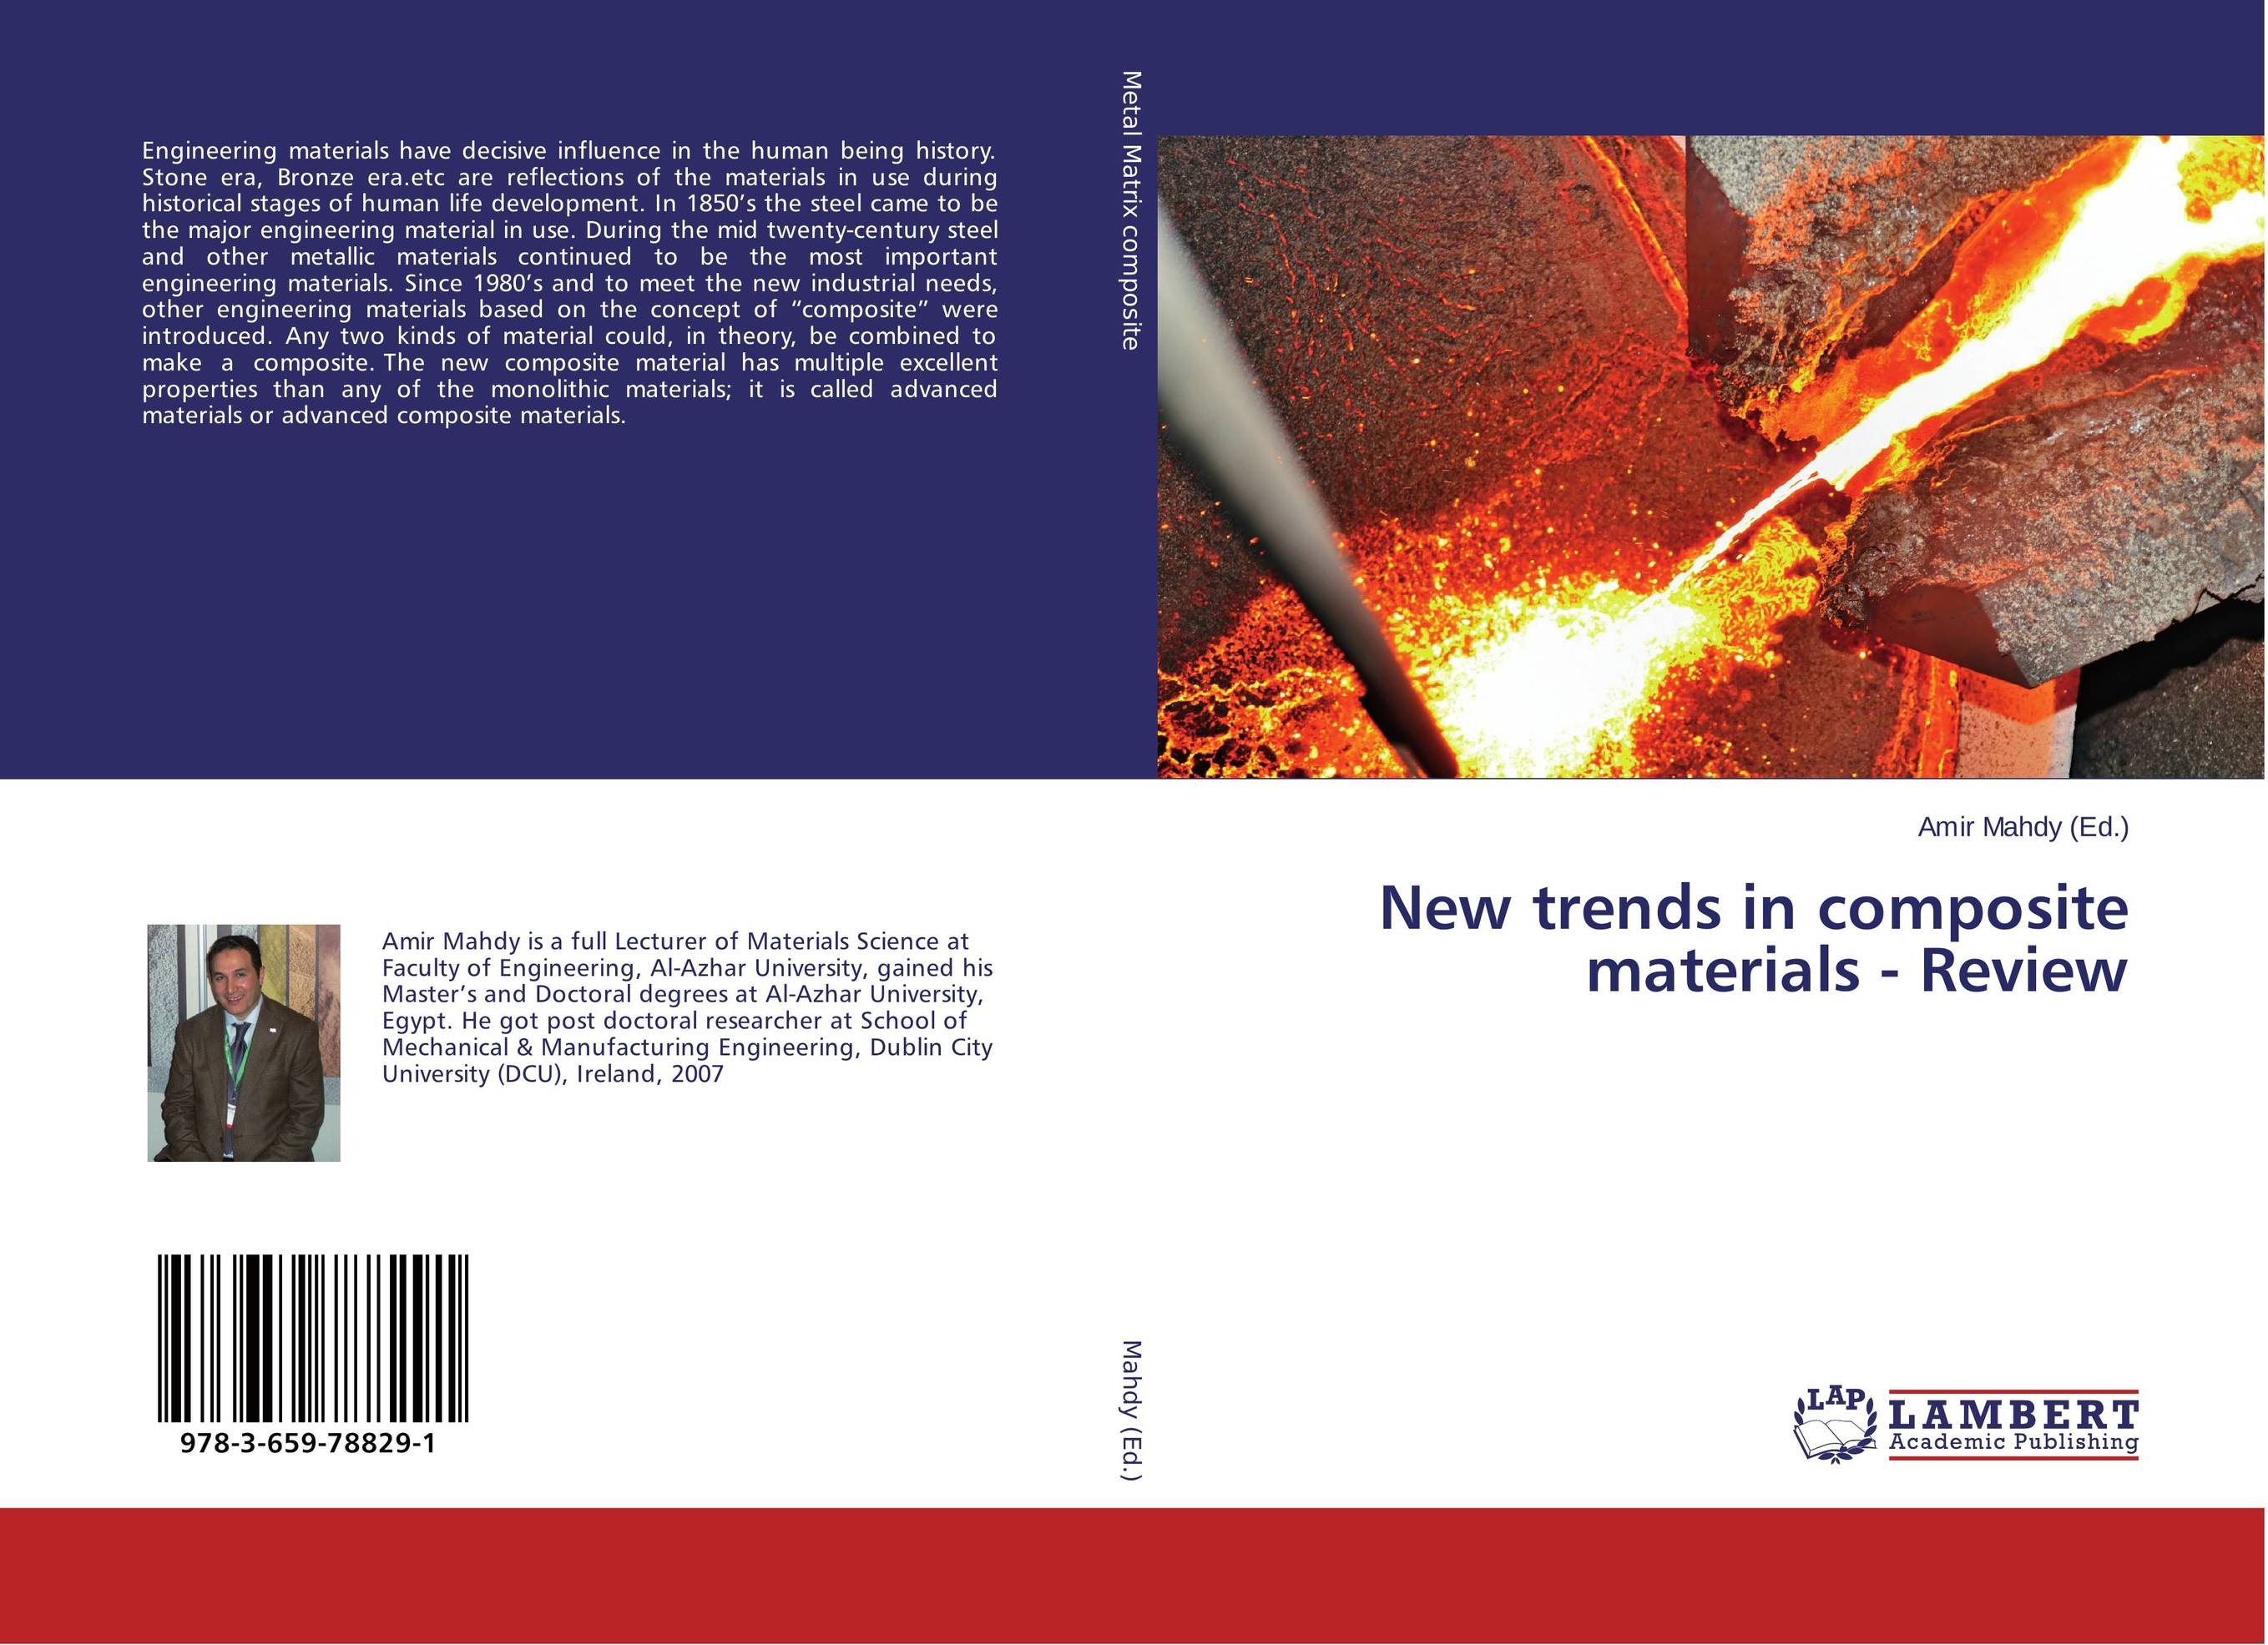 New trends in composite materials - Review juan martinez vega dielectric materials for electrical engineering